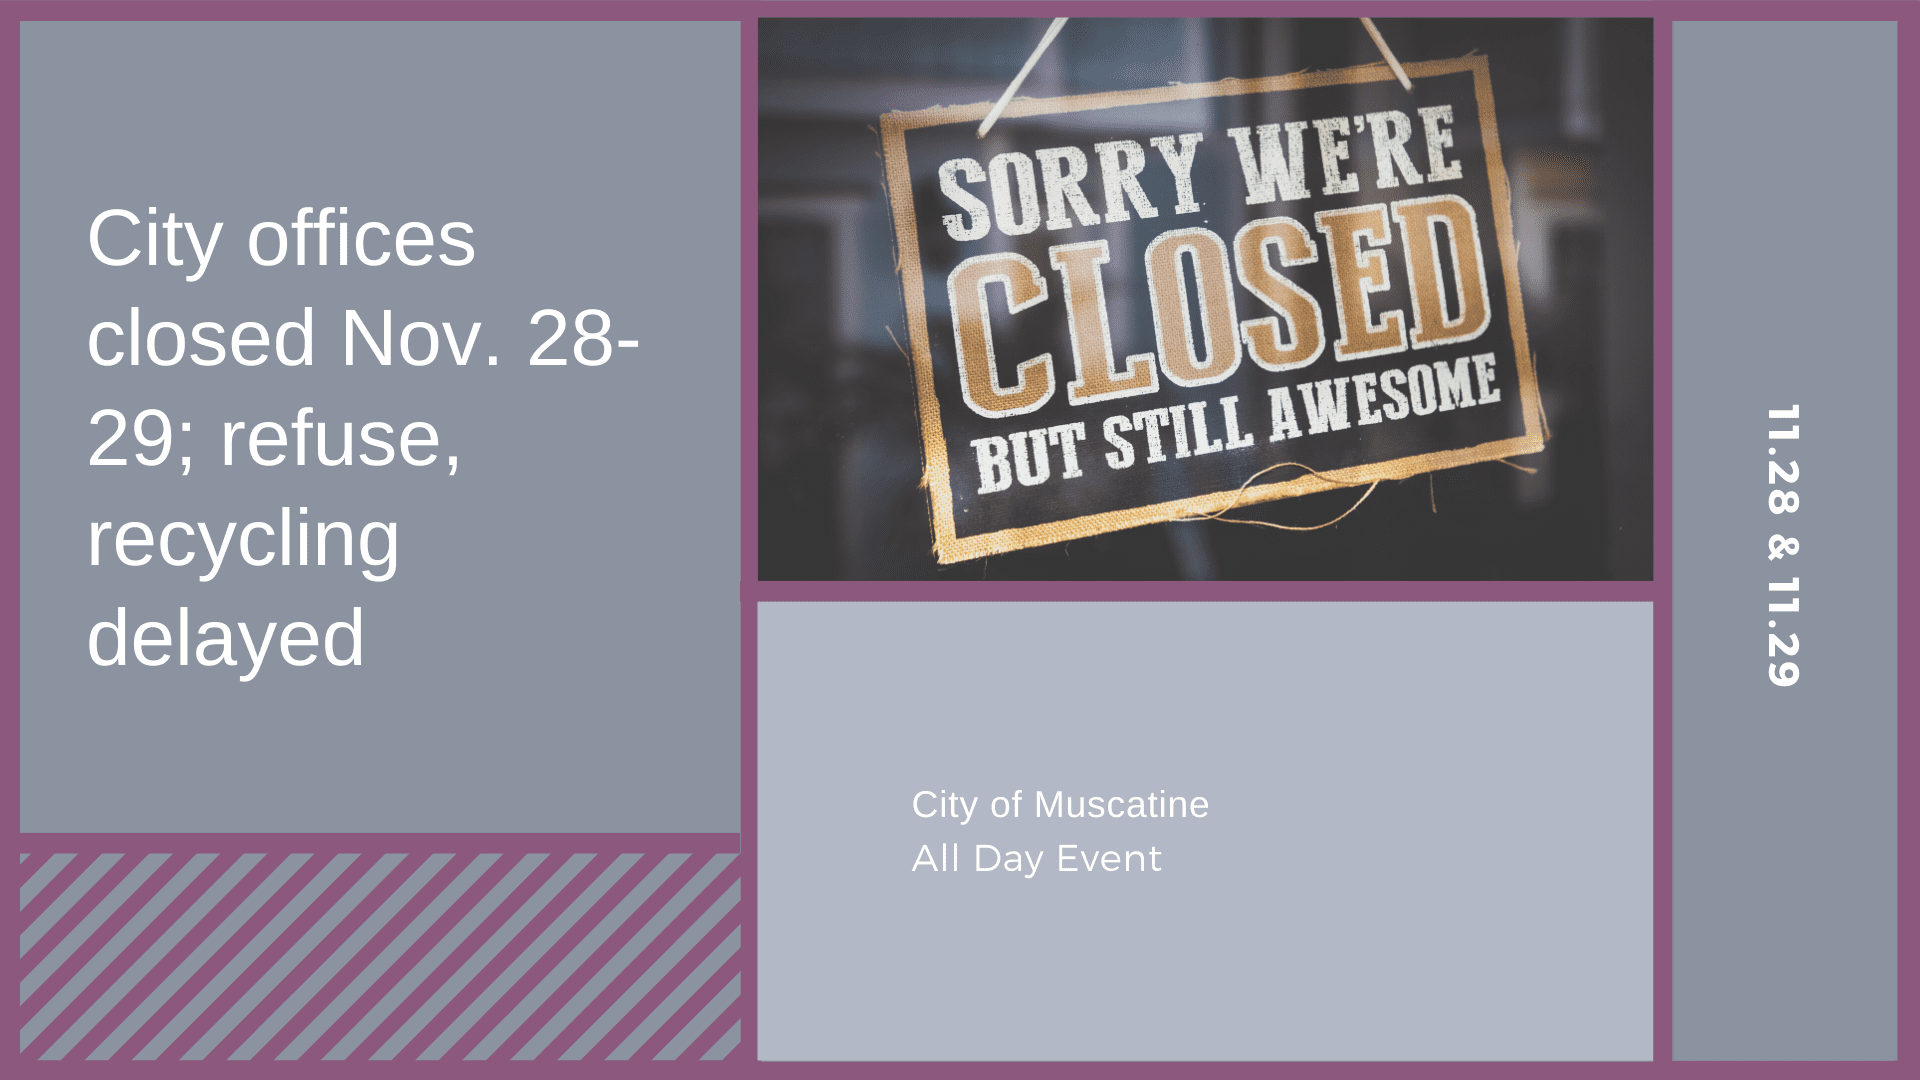 City offices closed Nov. 28-29; refuse, recycling delayed